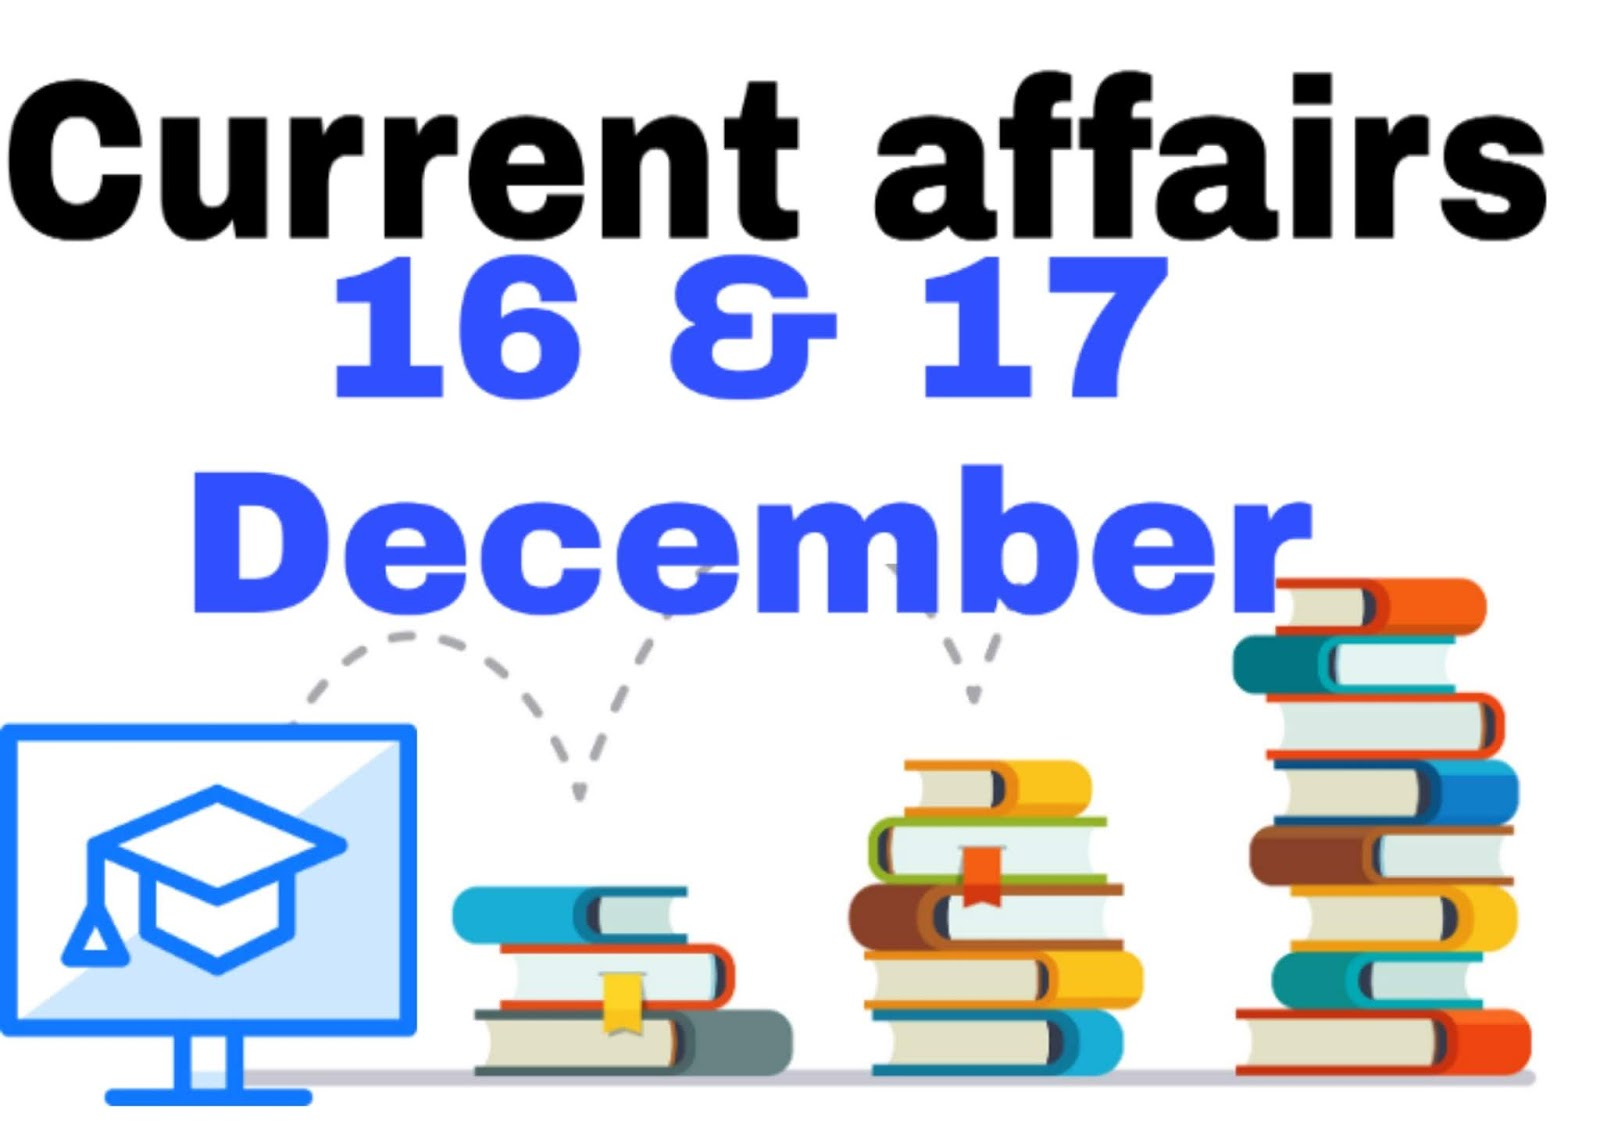 Today gk & Current affairs 16 and 17 December Current affairs for SSC/RAILWAYS/BANK, and other competitive exam , Download PDF